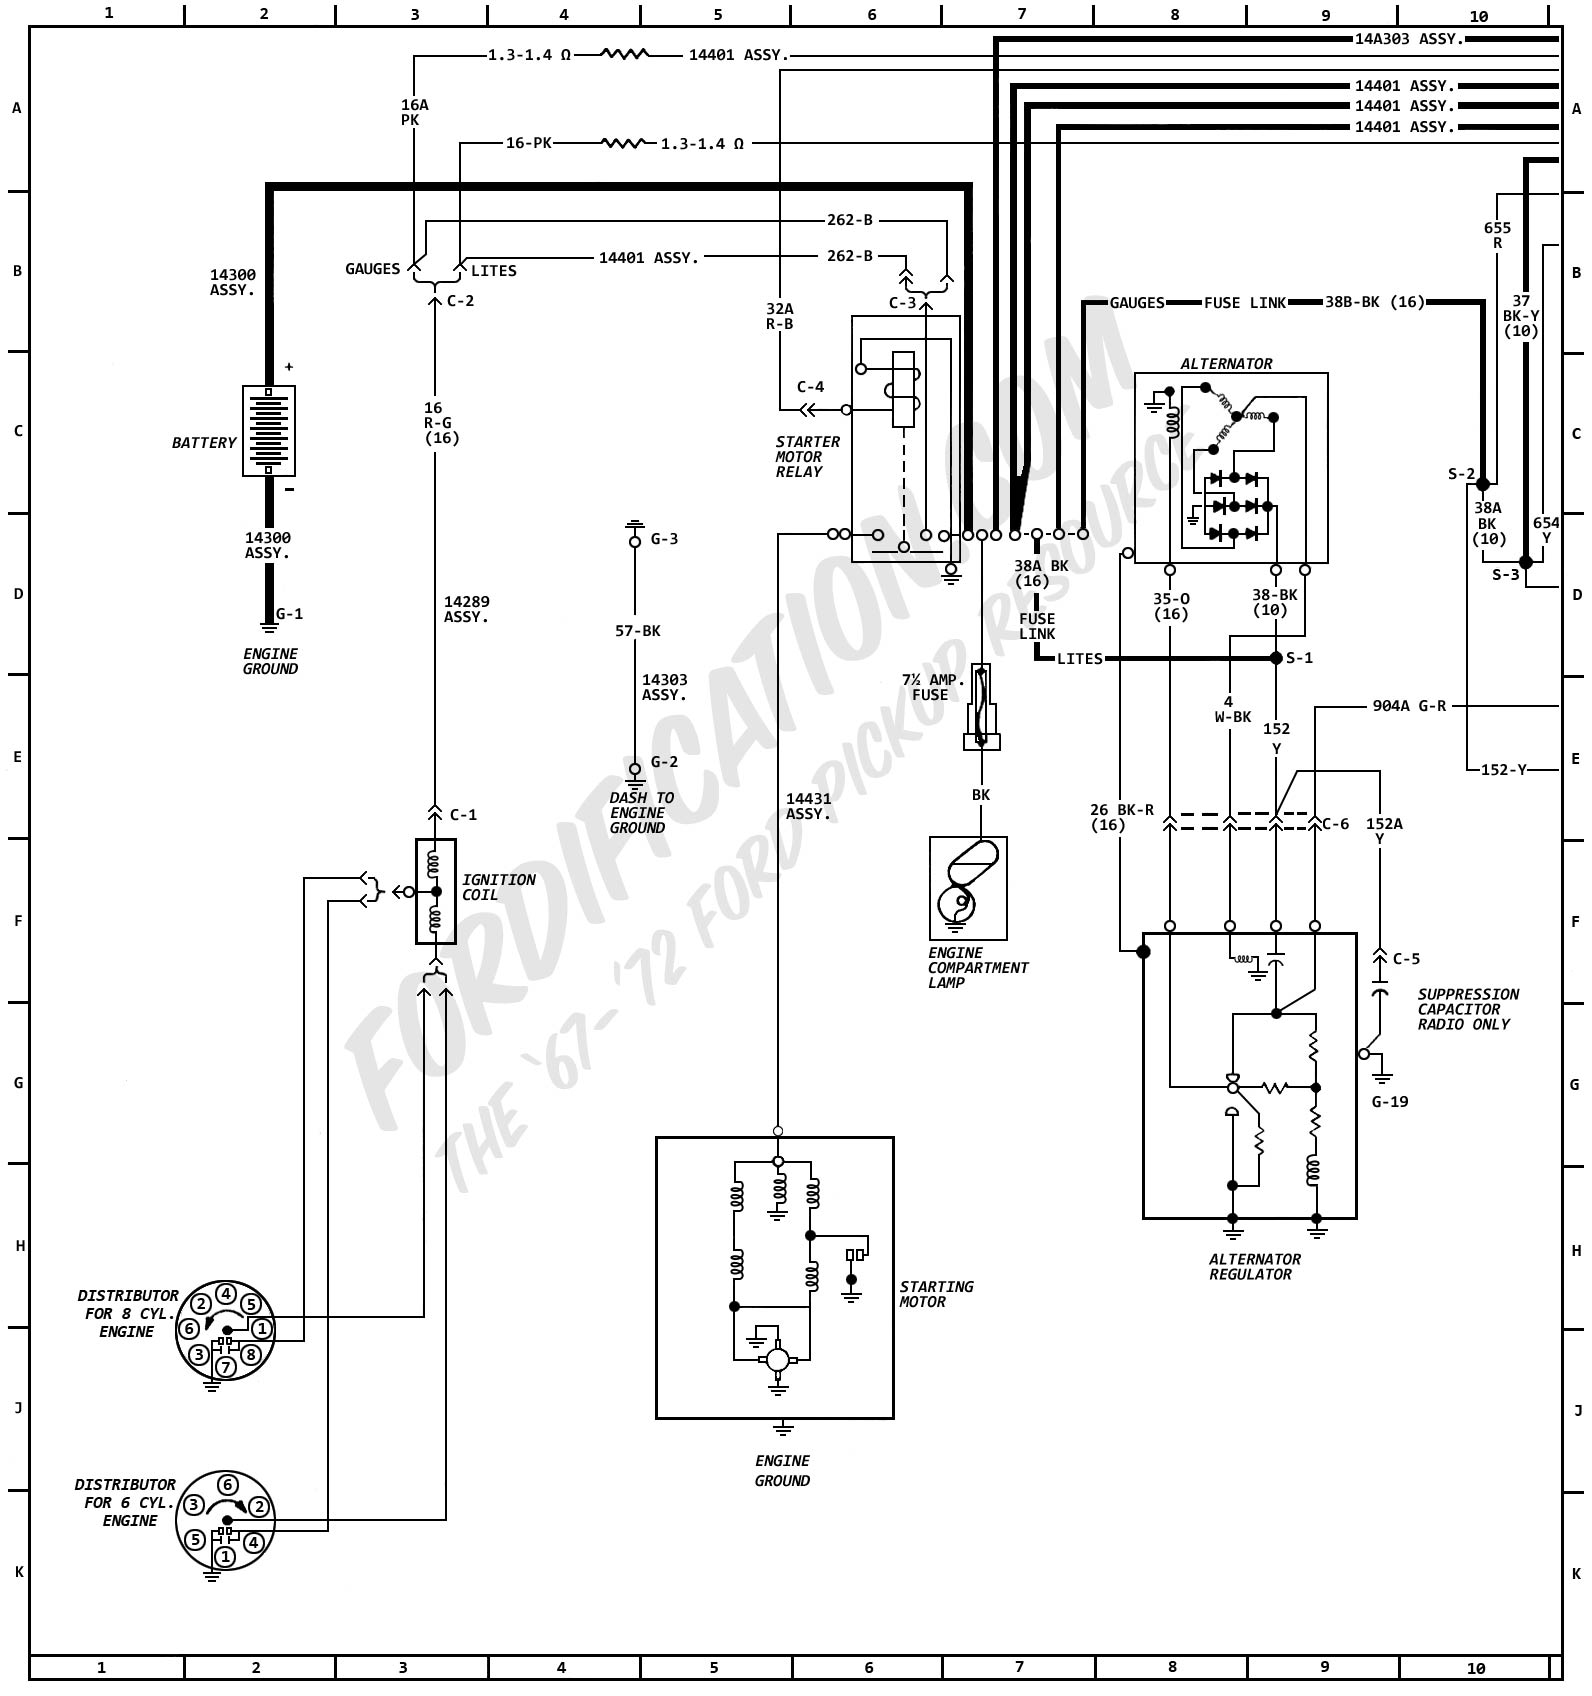 1972MasterWiring_01 1972 ford truck wiring diagrams fordification com wiring diagram 1972 ford f250 at edmiracle.co